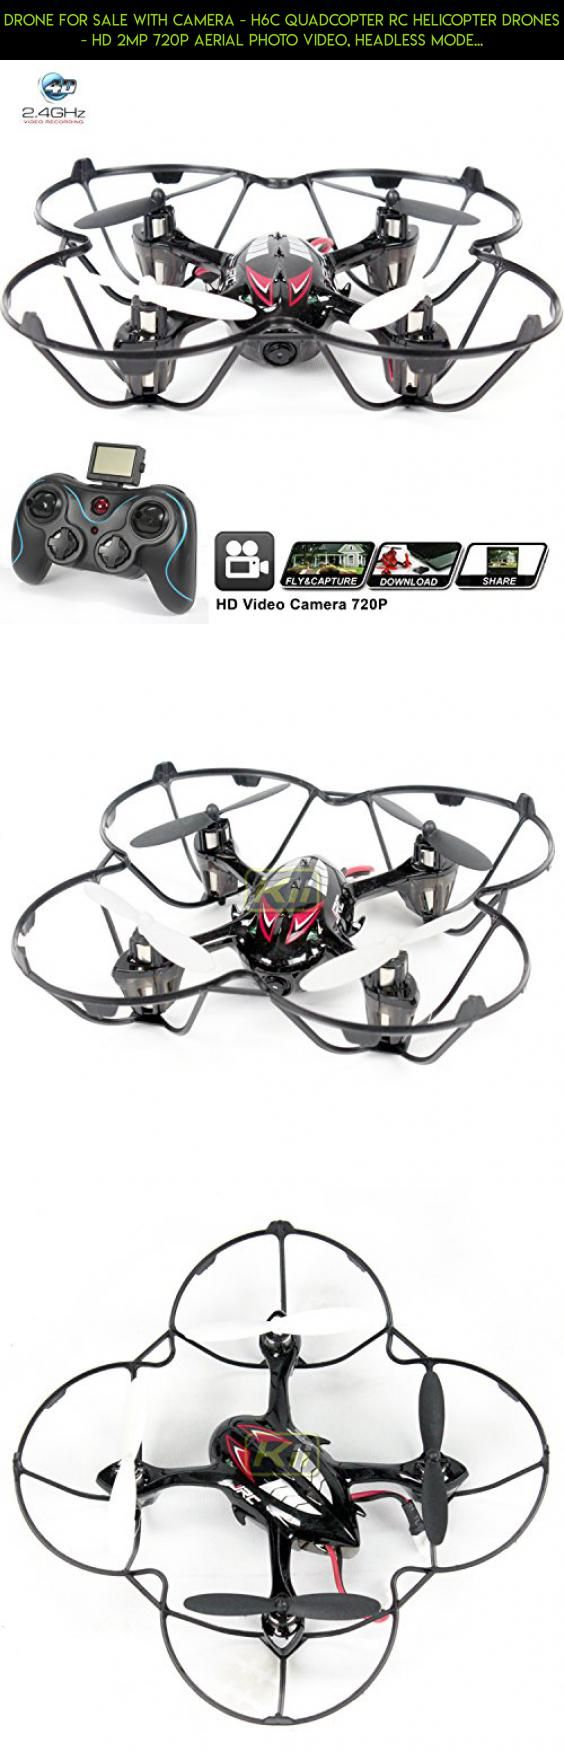 Drone for sale with Camera - H6C Quadcopter RC Helicopter Drones - HD 2MP 720p Aerial Photo Video, Headless Mode, 360 Stunt, 6 Axis Gyroscope, 2.4Ghz Radio Remote Control [USA Warranty + Tech Support] #parrot #technology #drone #gadgets #products #fpv #kit #external #racing #shopping #tech #plans #camera #parts #battery #charger